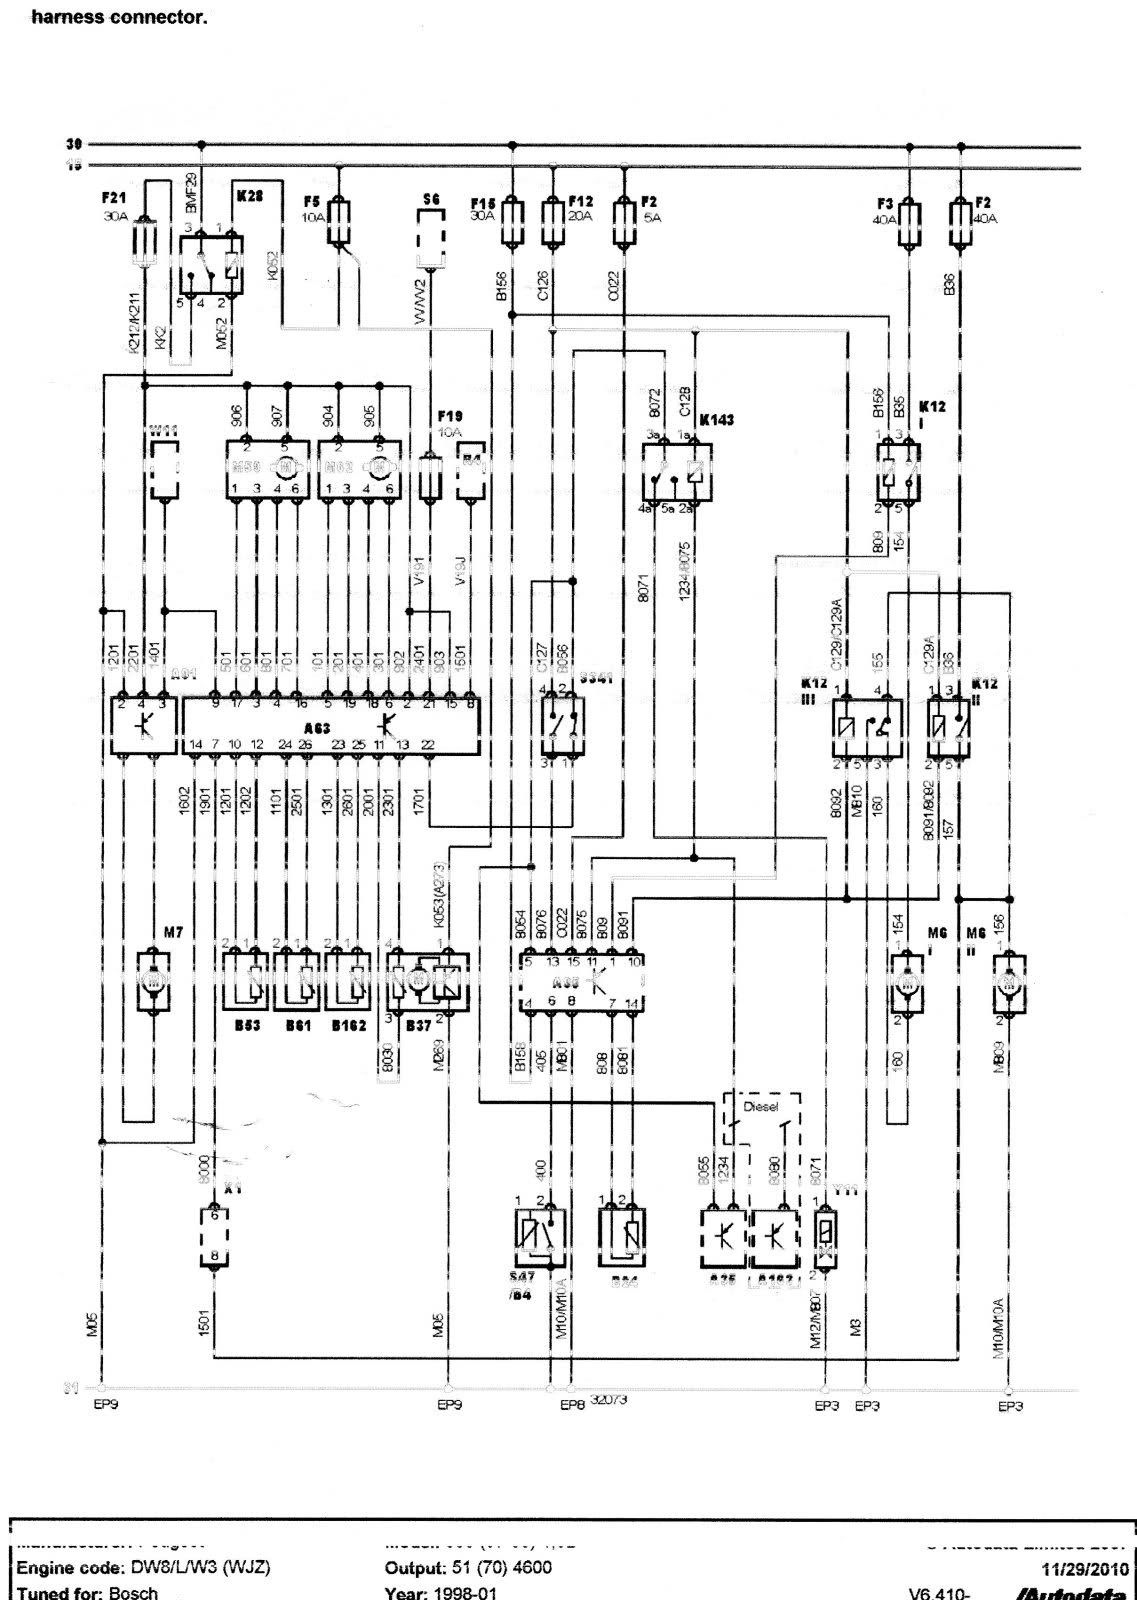 peugeot 505 wiring diagram electronic wiring diagrams rh ore house co uk